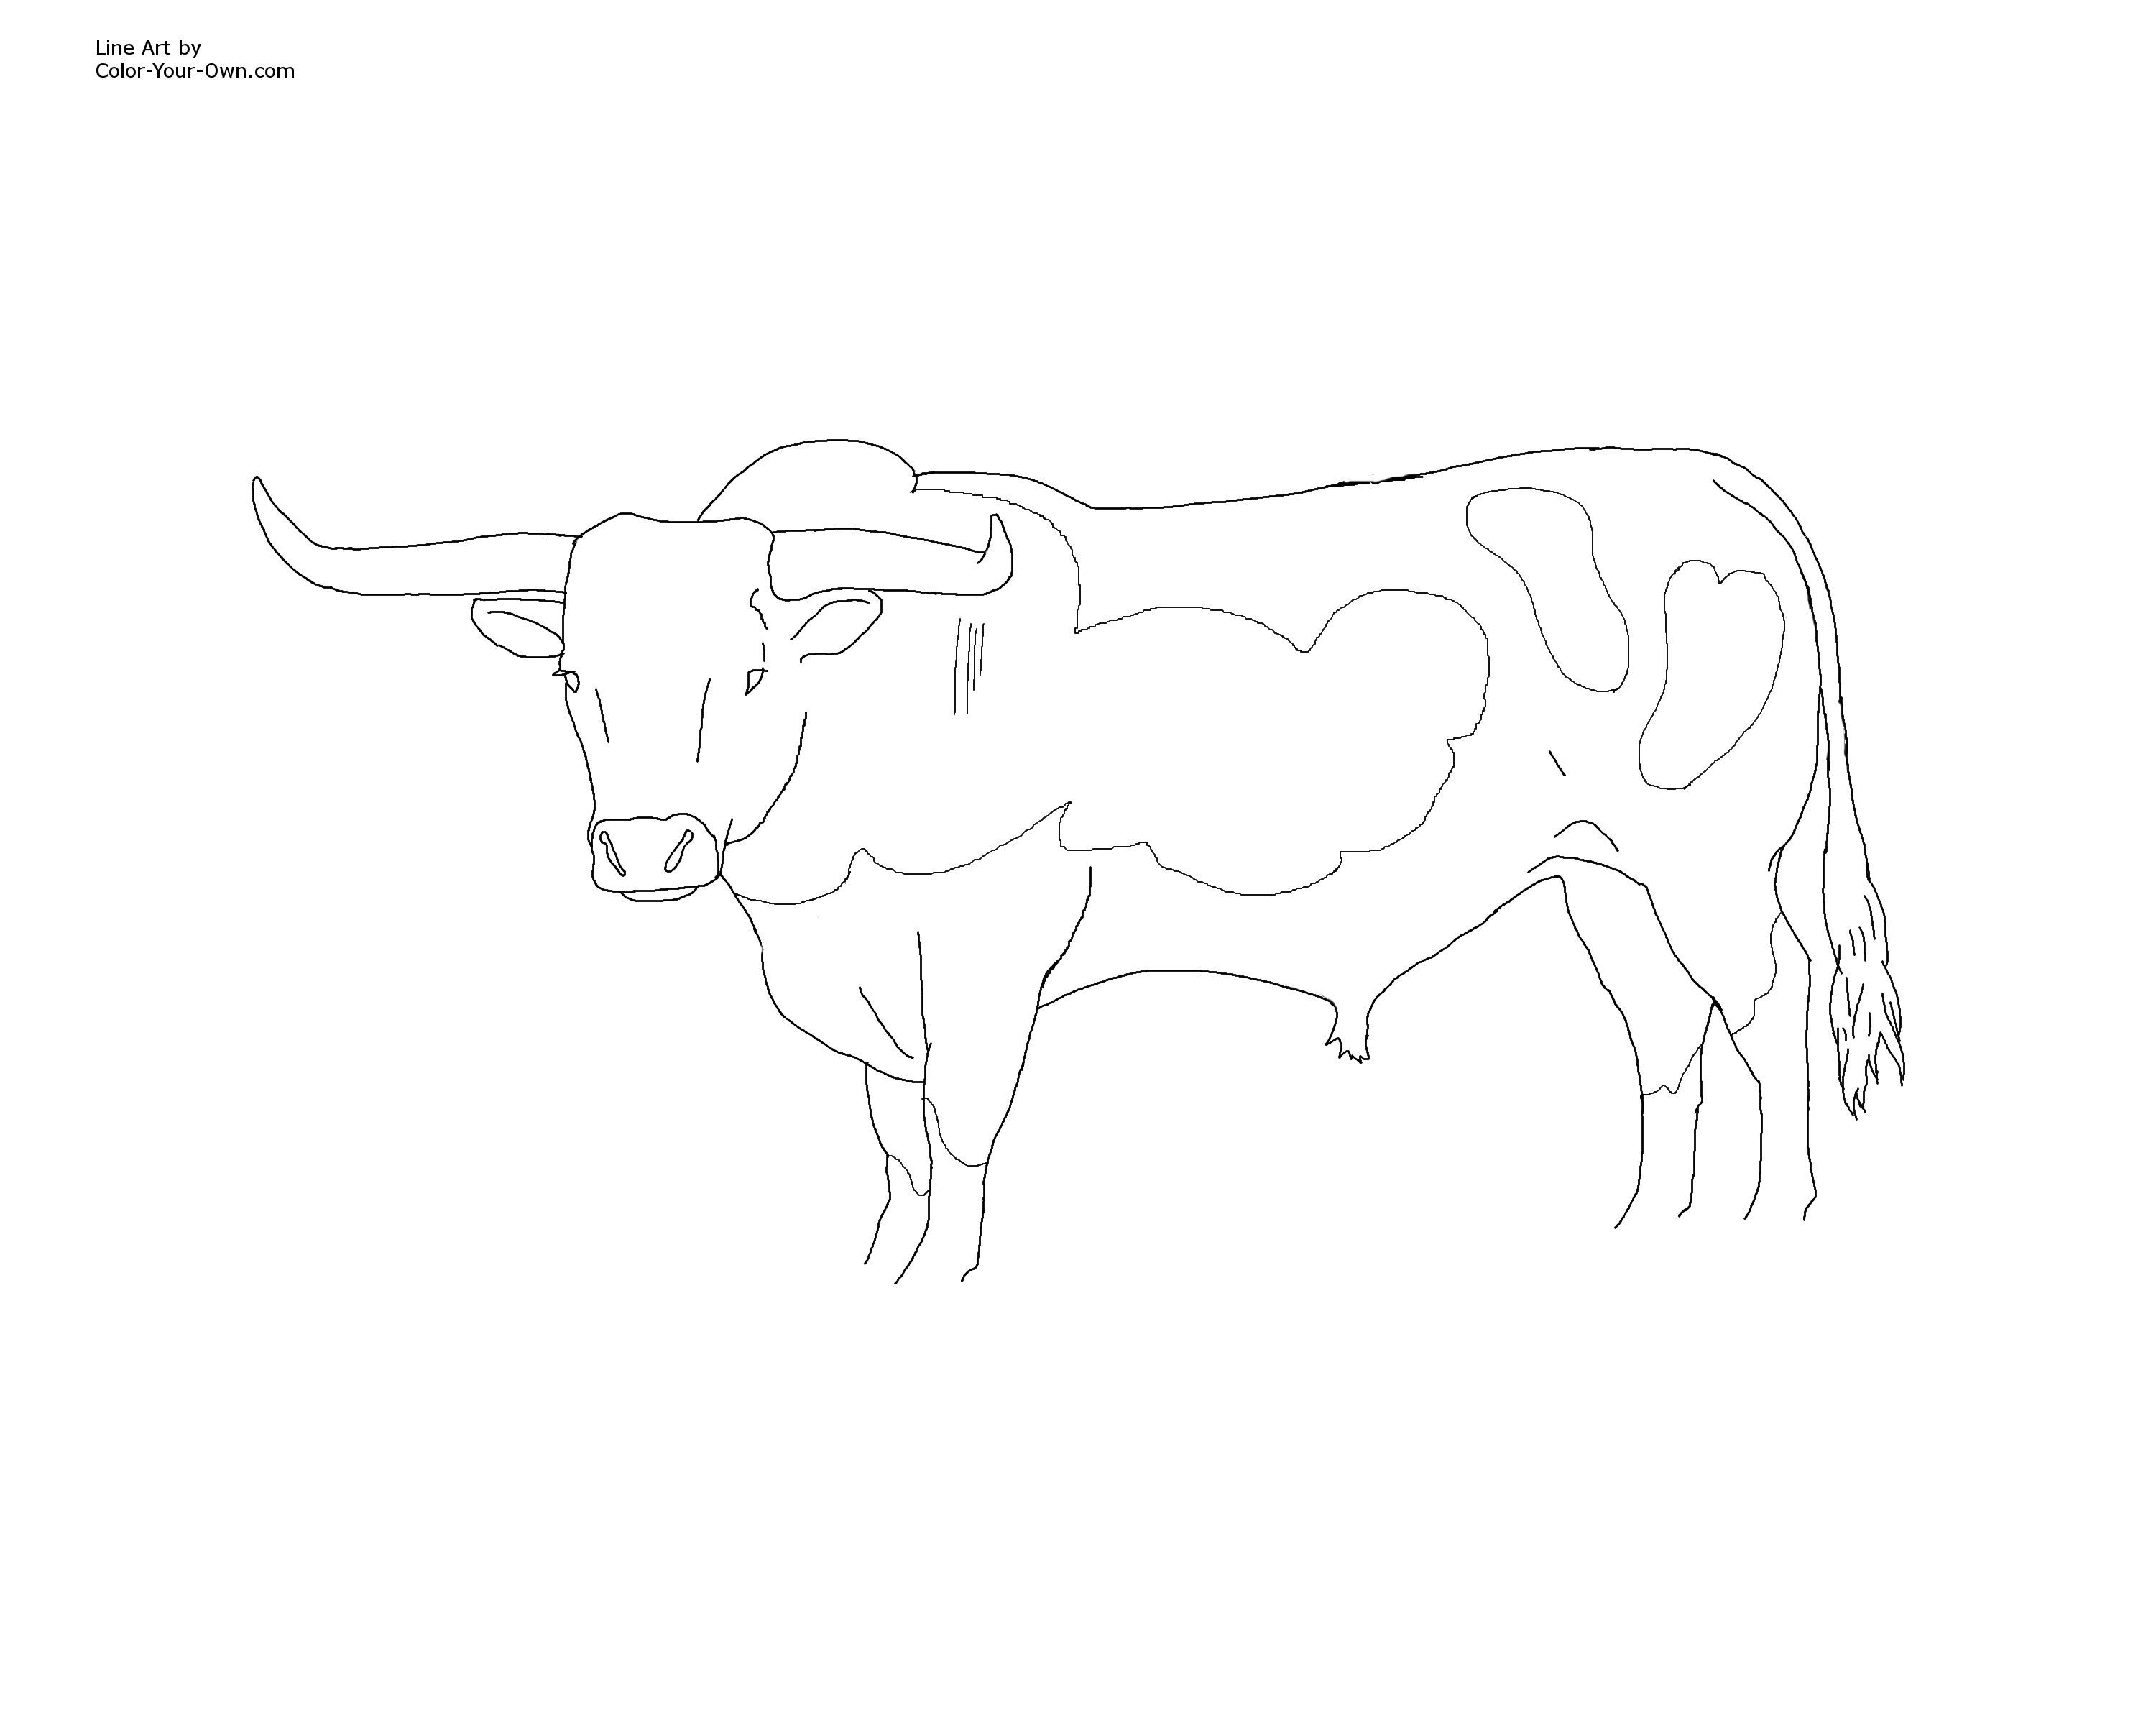 Bull coloring pages To Print | kids | Pinterest | Leather pattern ...